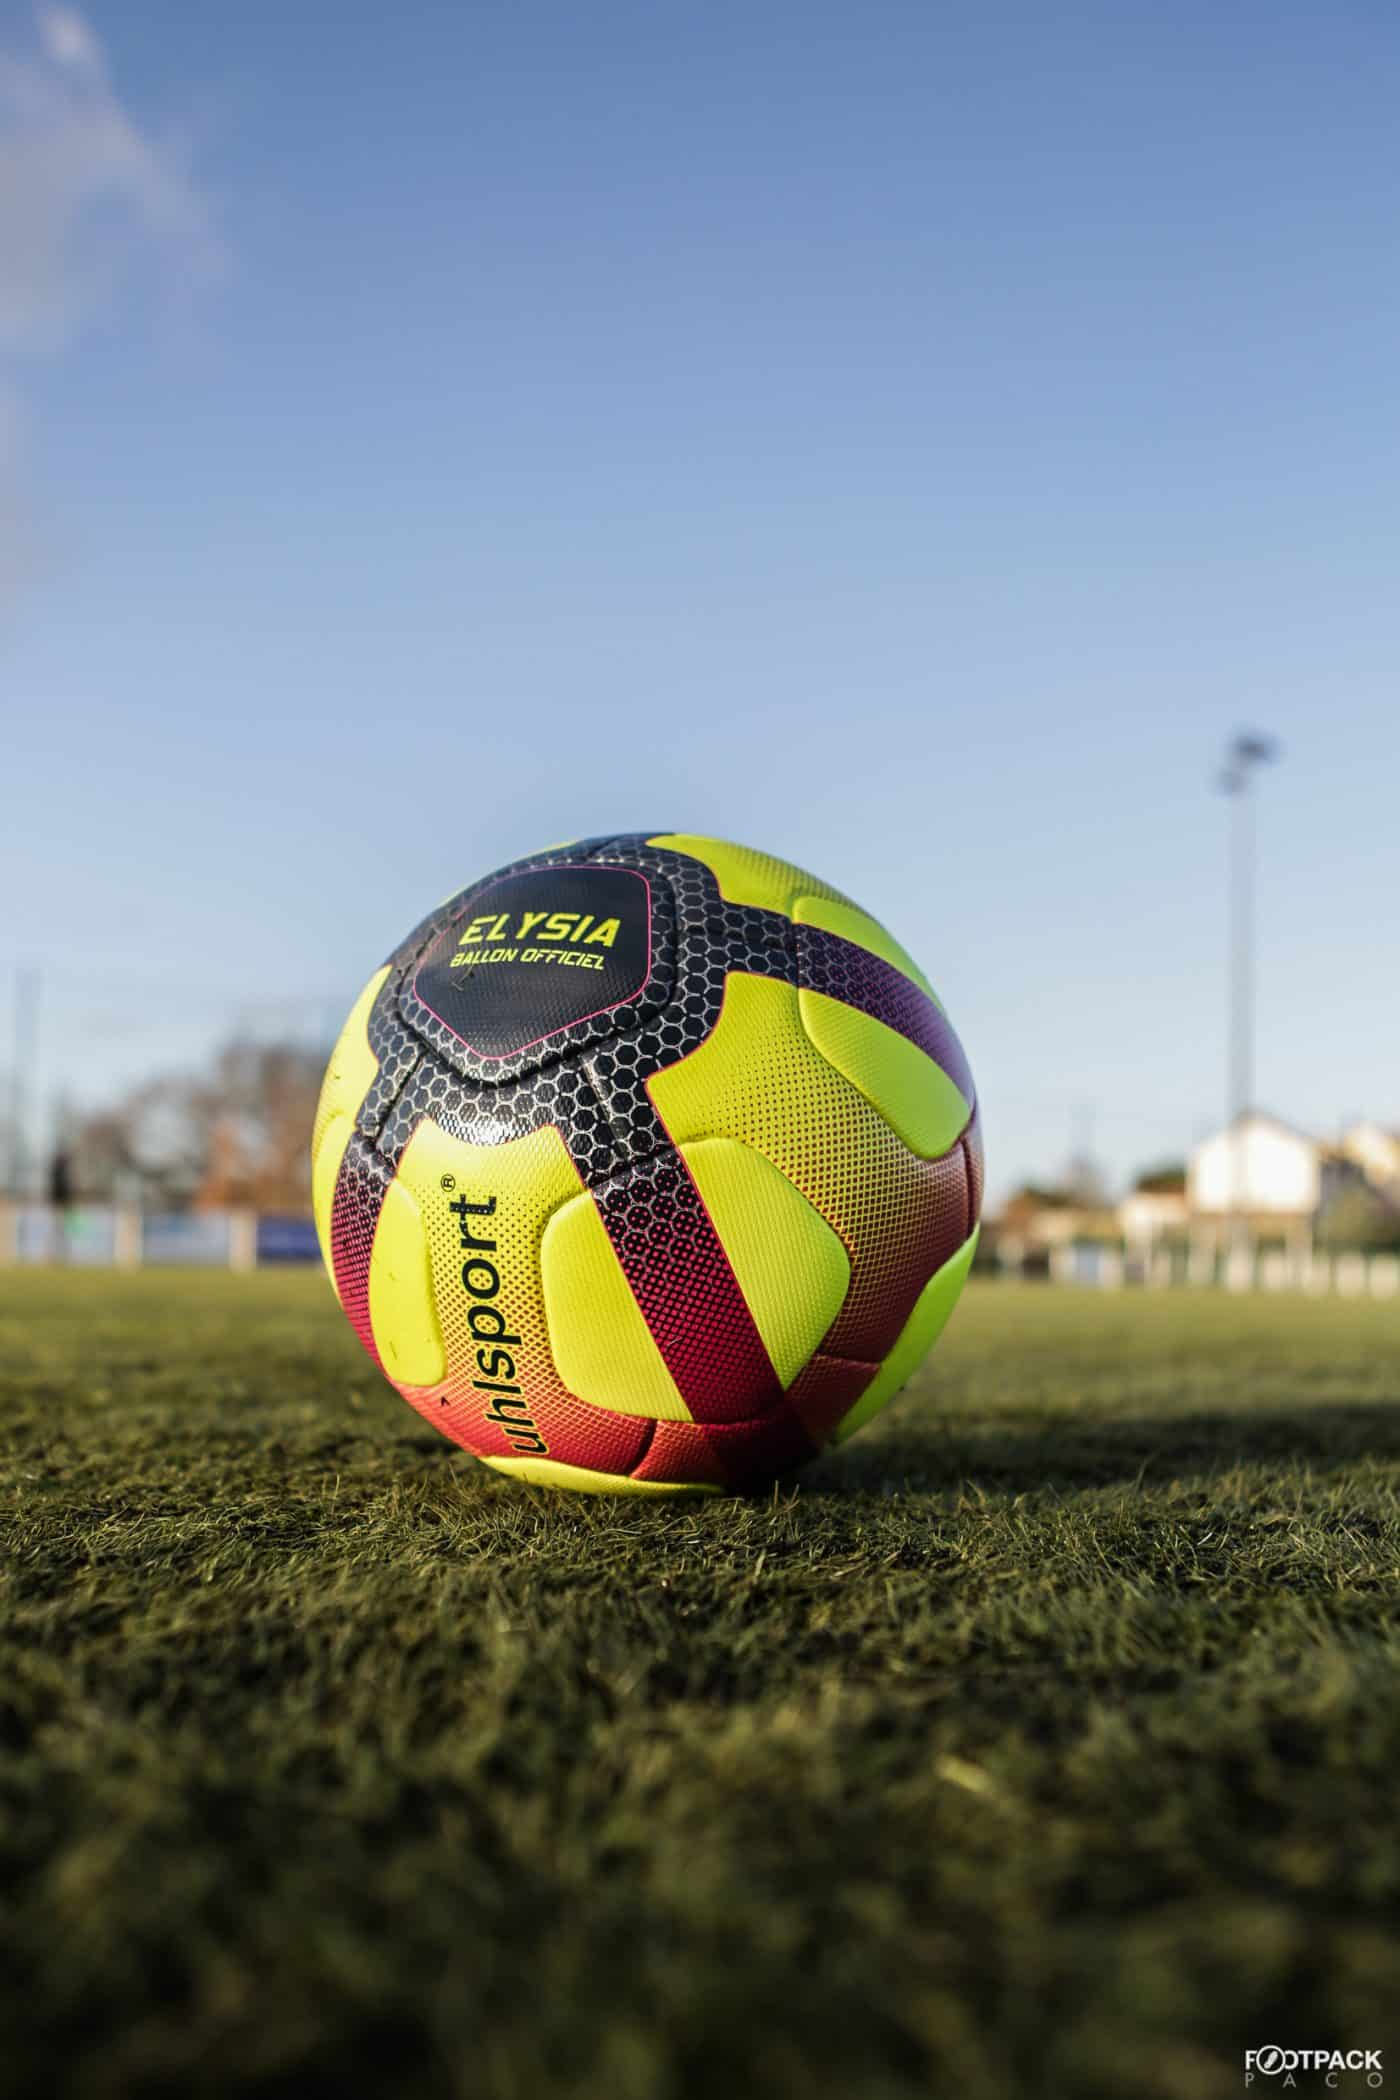 ballon-ligue-1-conforama-hiver-2018-2019-uhlsport-3